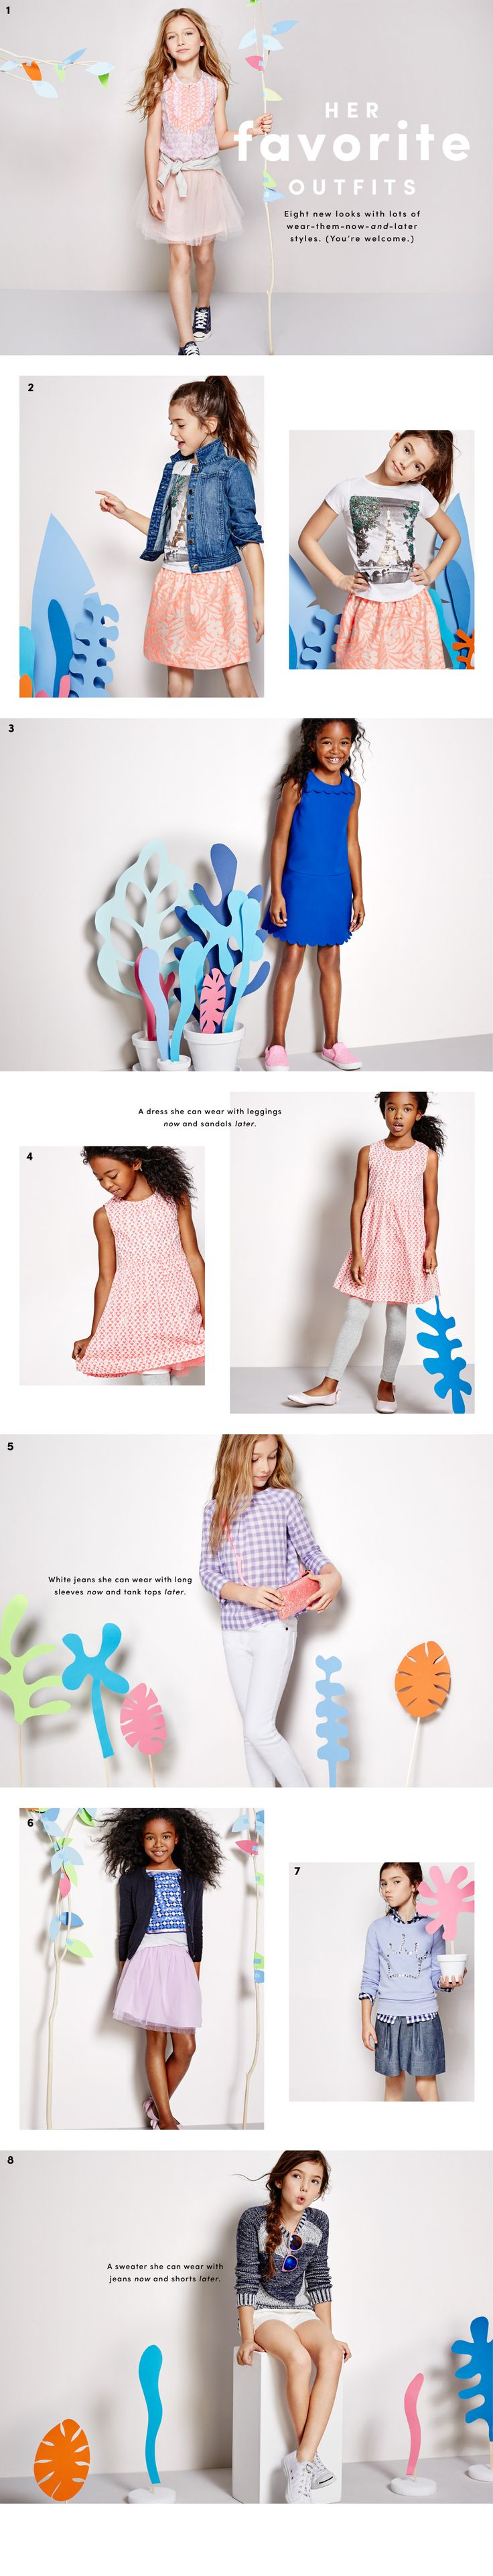 Girls' Clothing - Shop Everyday Deals on Top Styles - J.Crew Factory